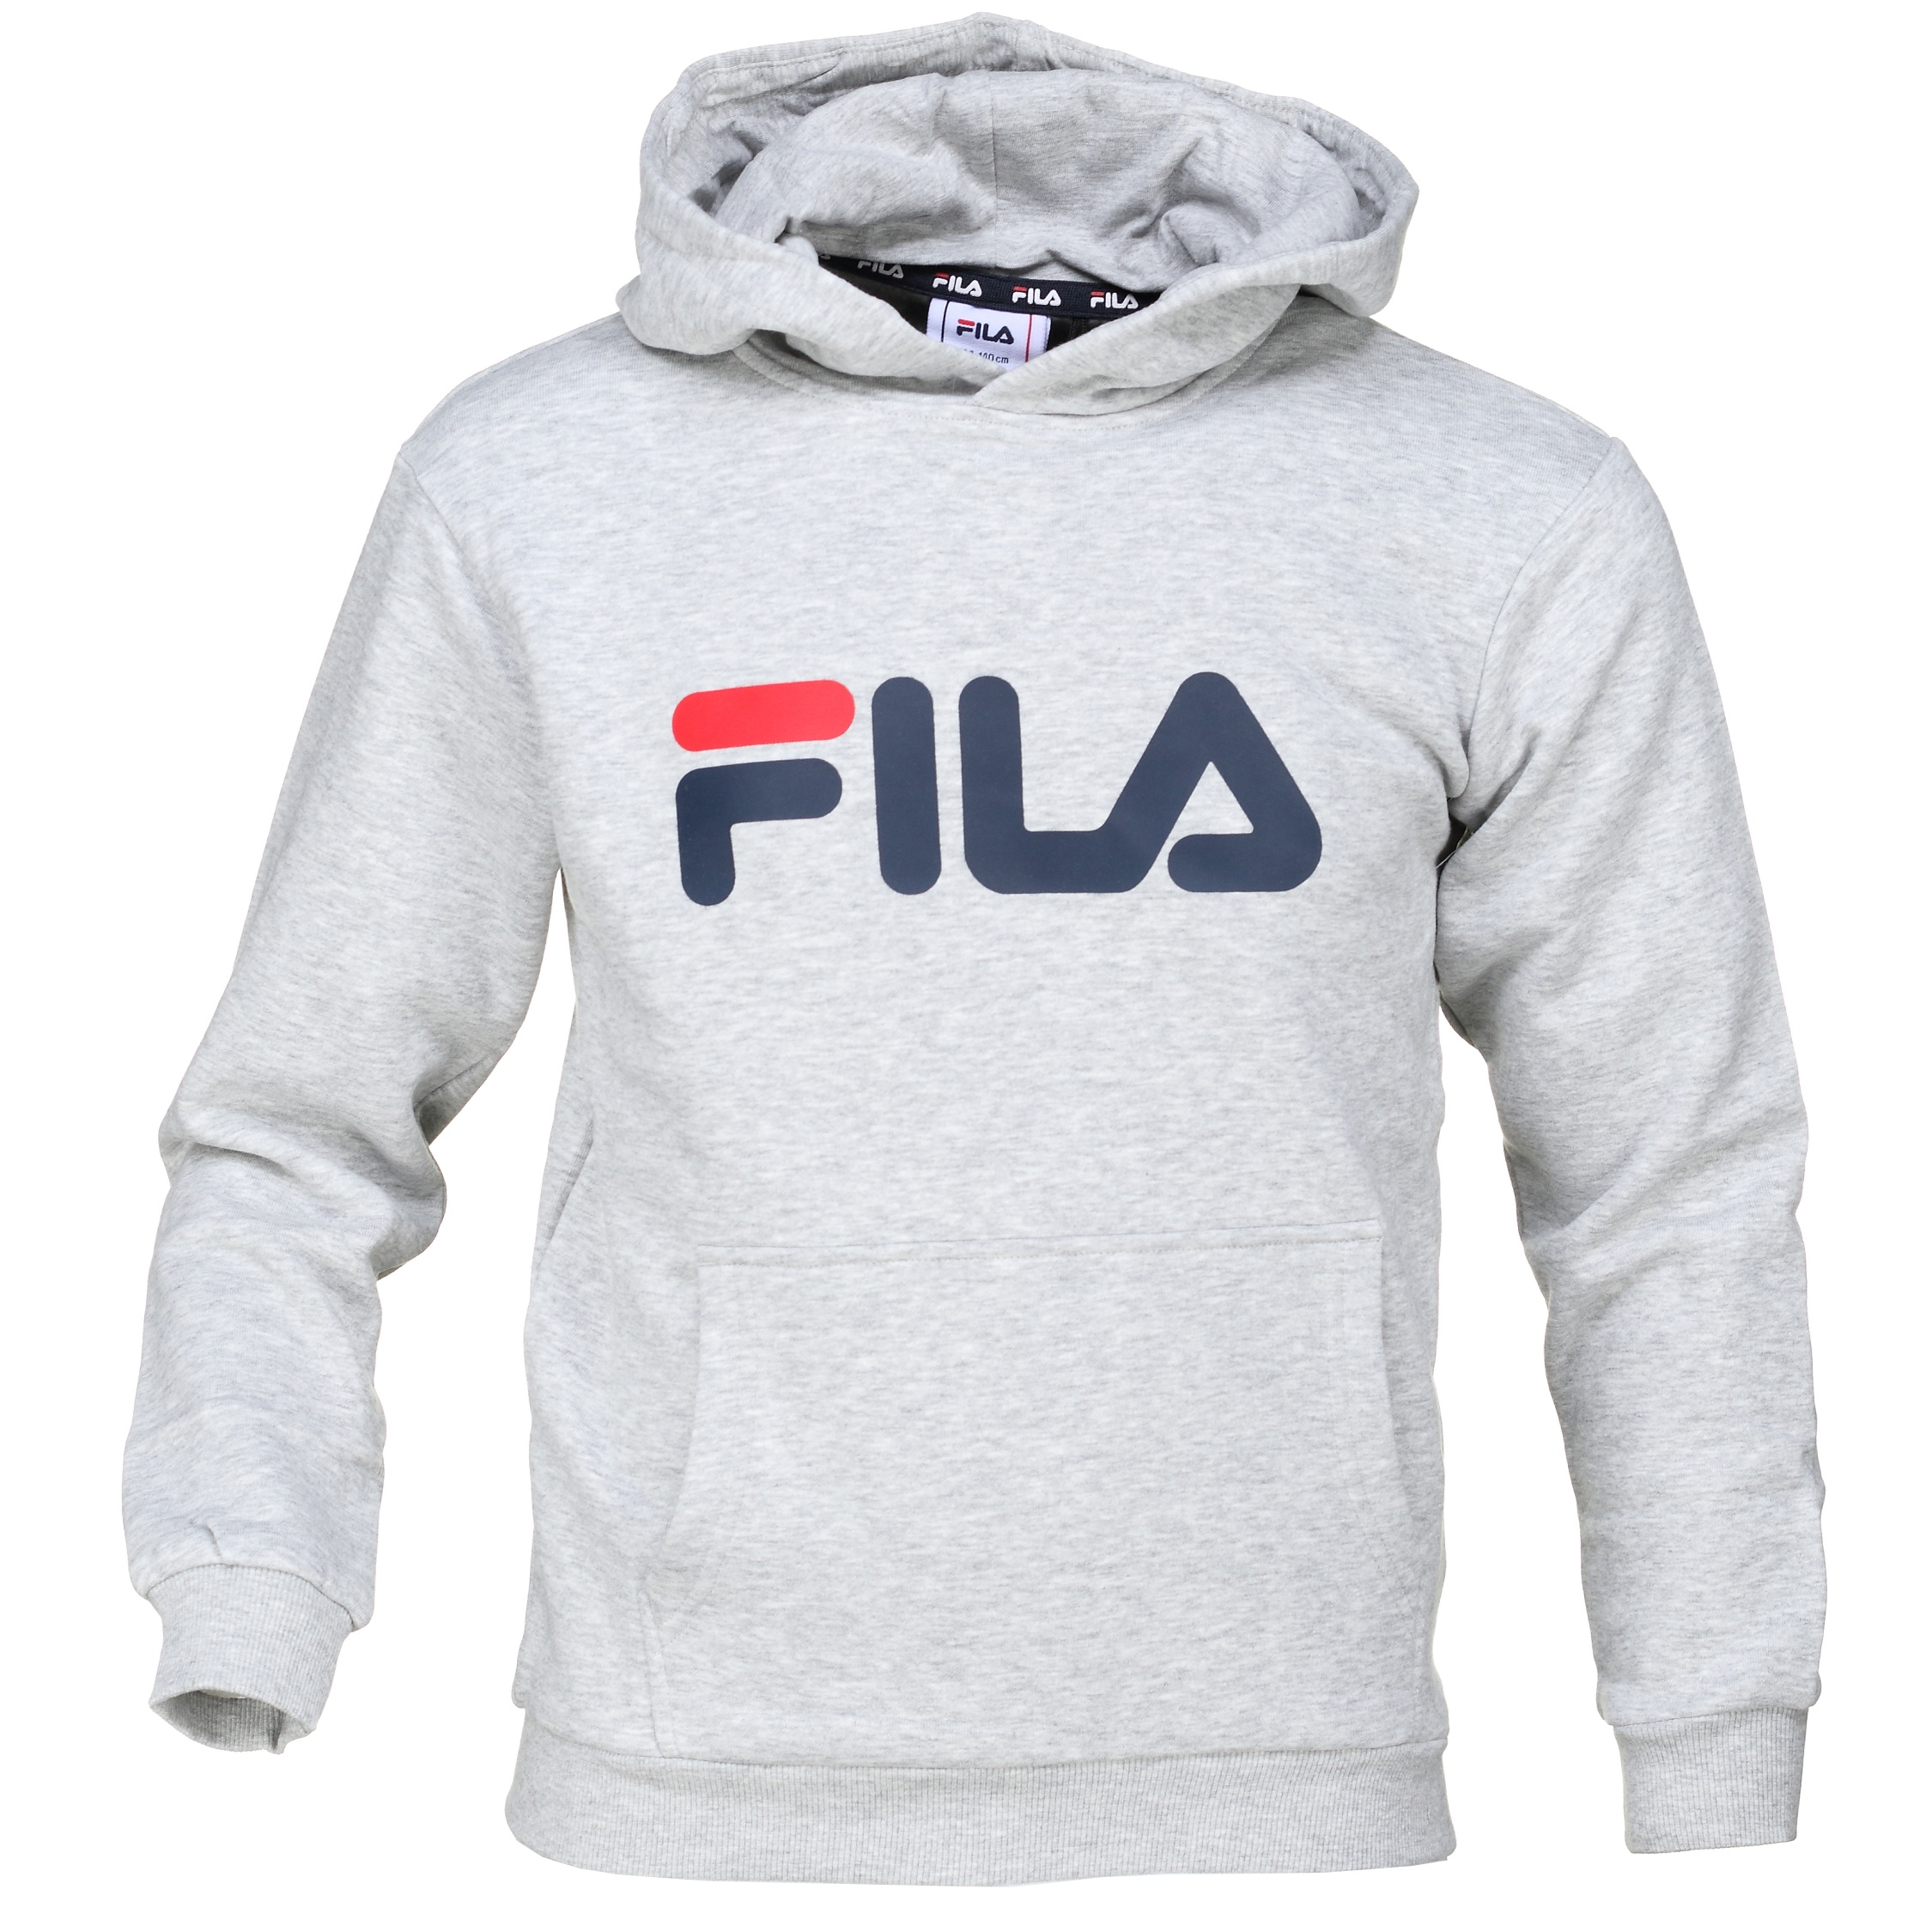 http://www.leadermode.com/175853/fila-687193-claissic-logo-b13-light-grey-mel.jpg